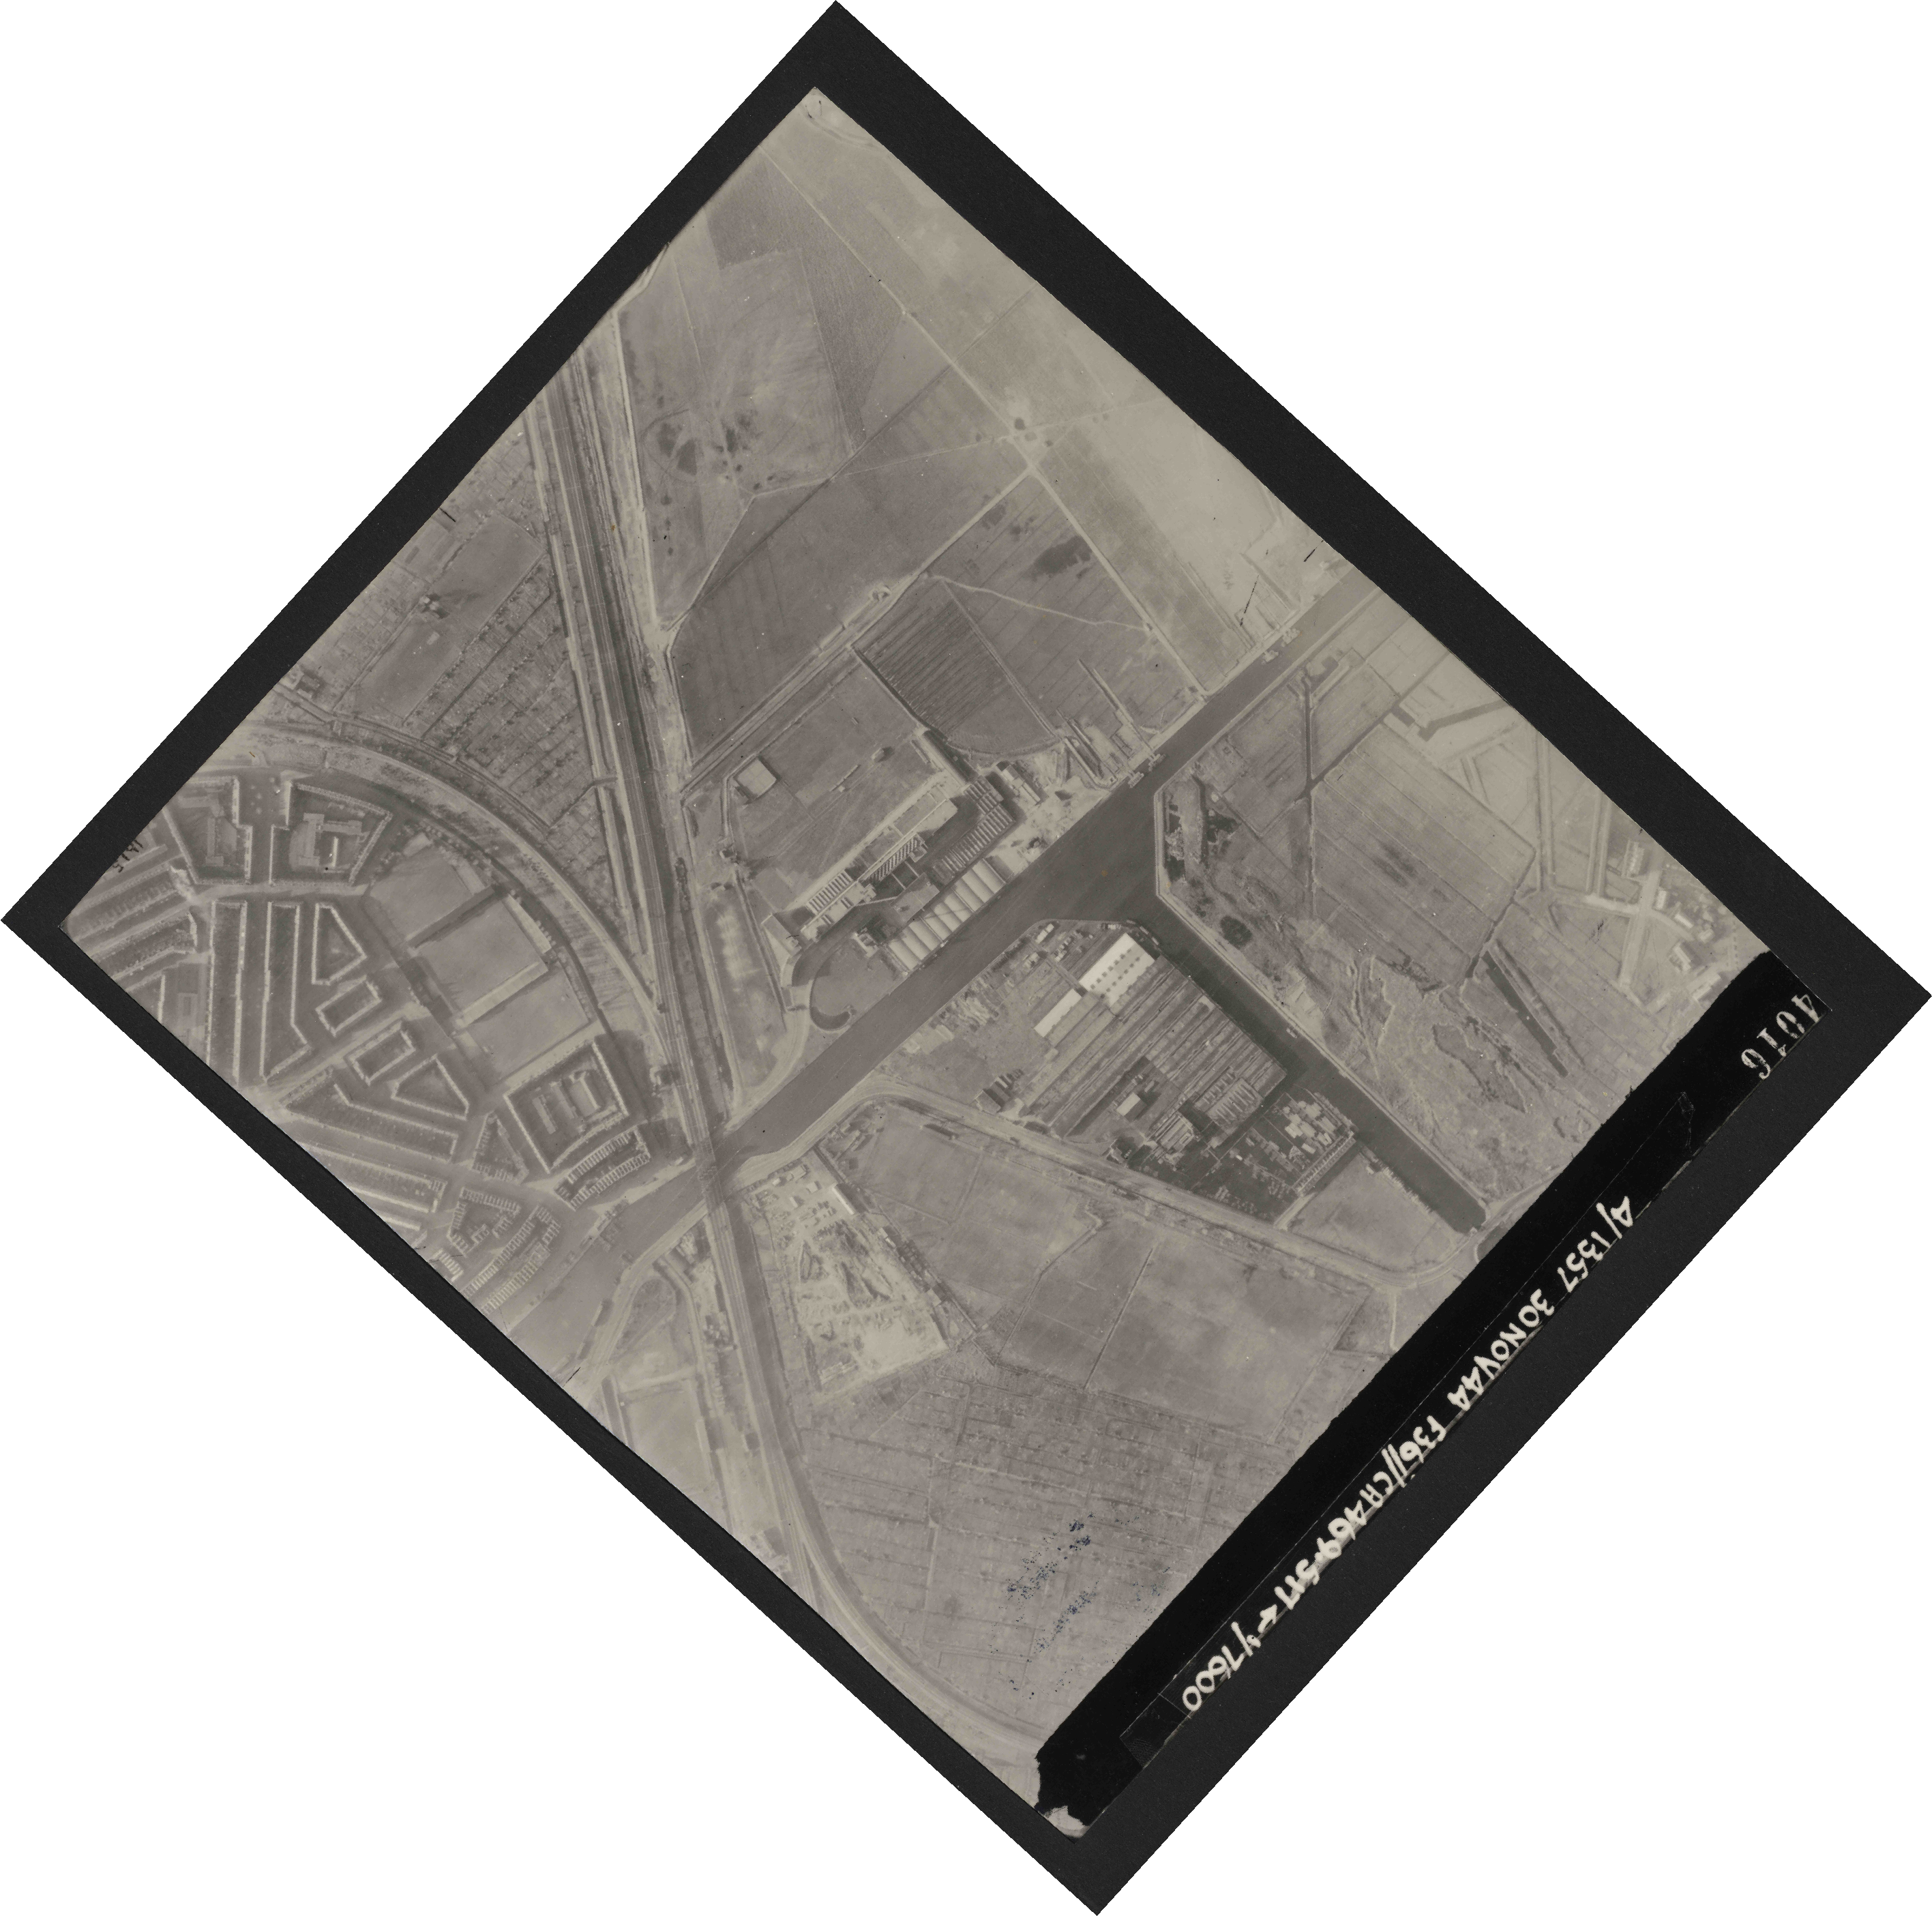 Collection RAF aerial photos 1940-1945 - flight 259, run 02, photo 4016